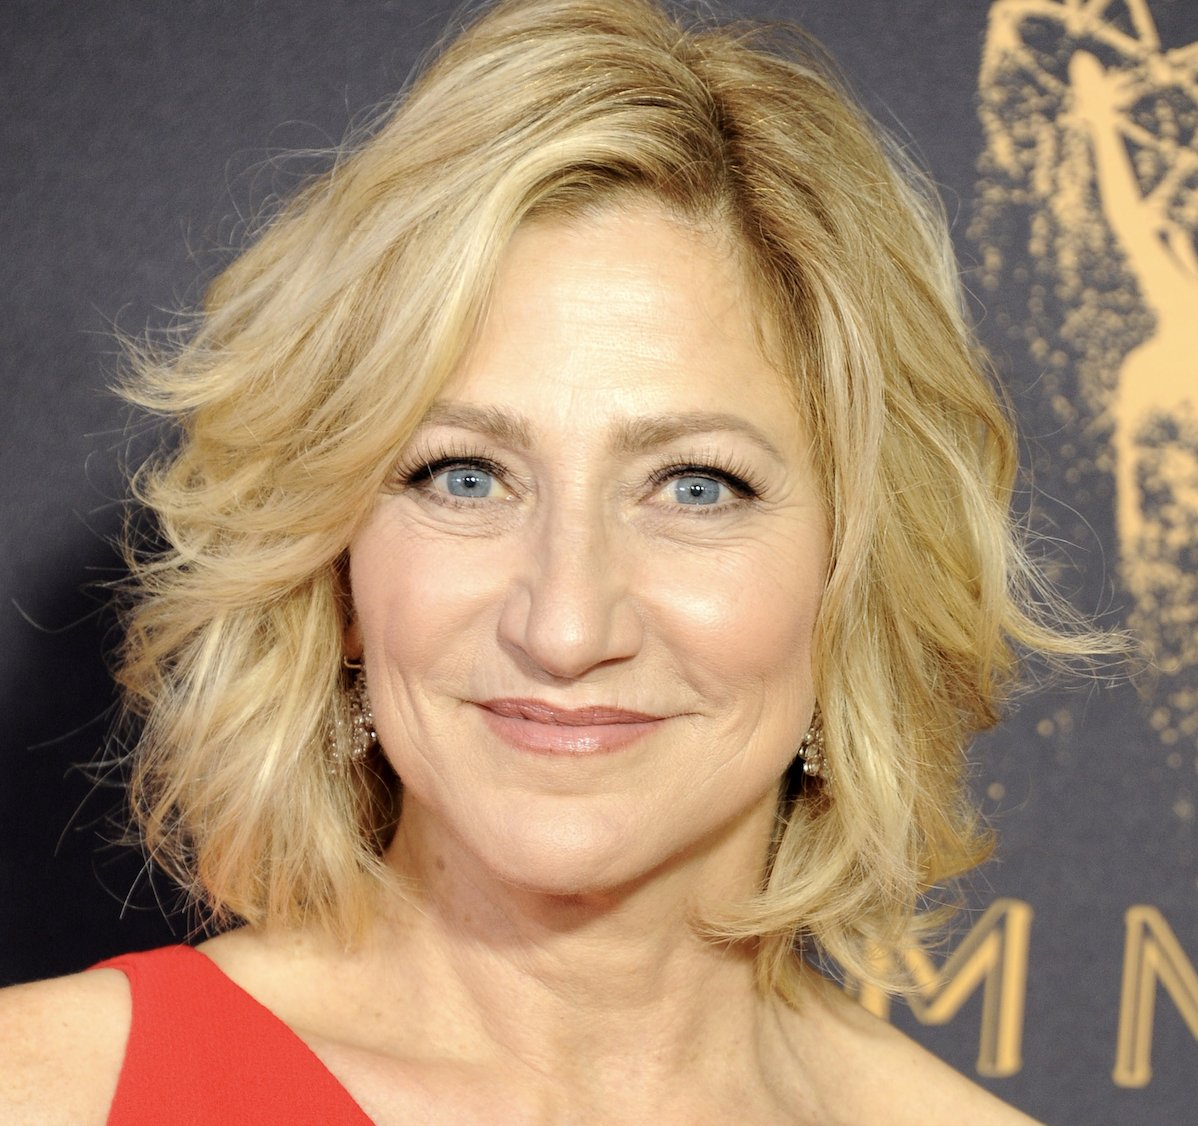 """Edie Falco has been cast to play Hillary Clinton in Ryan Murphy's """"Impeachment: American Crime Story."""" Clive Owen is playing Bill Clinton and Beanie Feldstein is playing Monica Lewinsky in the FX series."""